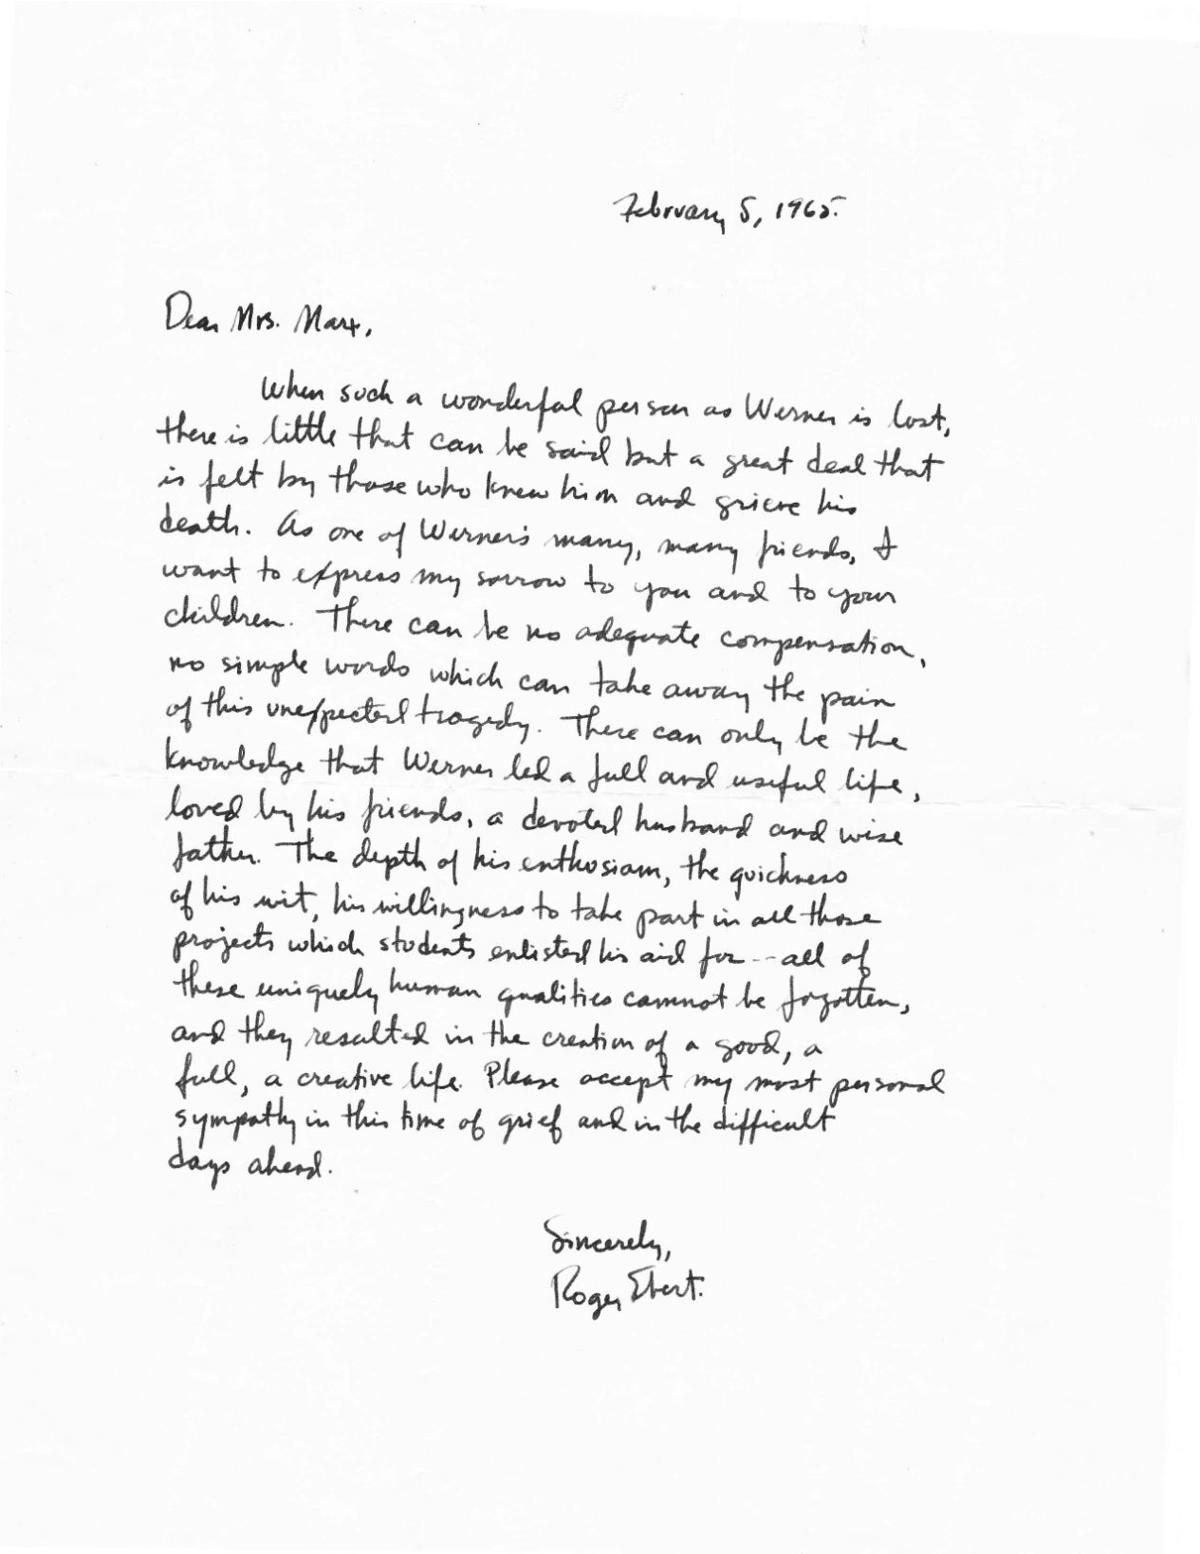 Ebert letter to Frederick Marx's mother